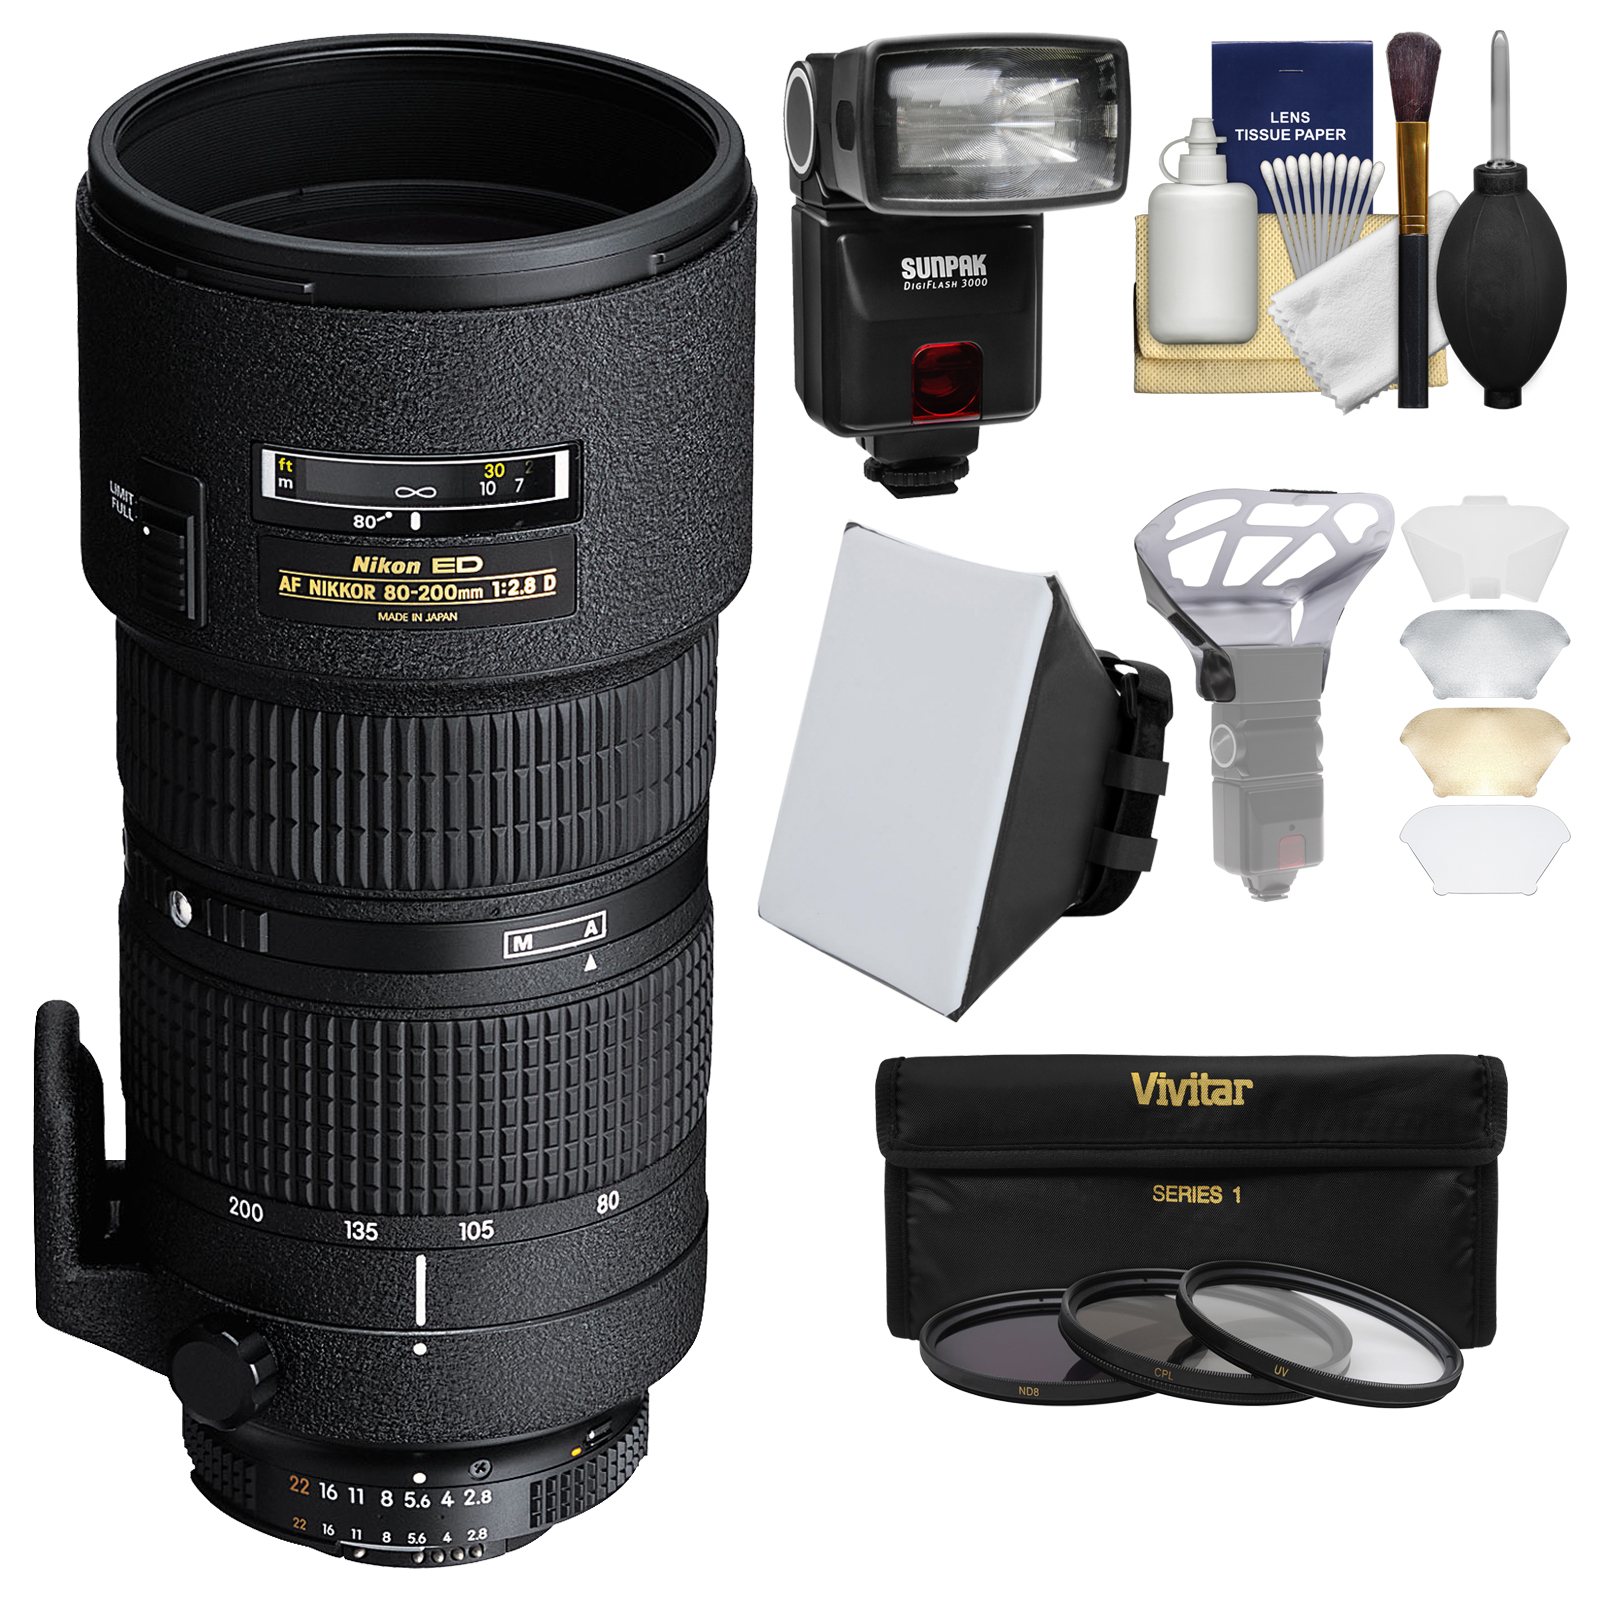 Nikon 80-200mm f/2.8D ED AF Zoom-Nikkor Lens with iTTL Flash + Soft Box + Bouncer + 3 Filters Kit for D3300, D5300, D5500, D7100, D7200, D610, D750, D810, D4s Cameras